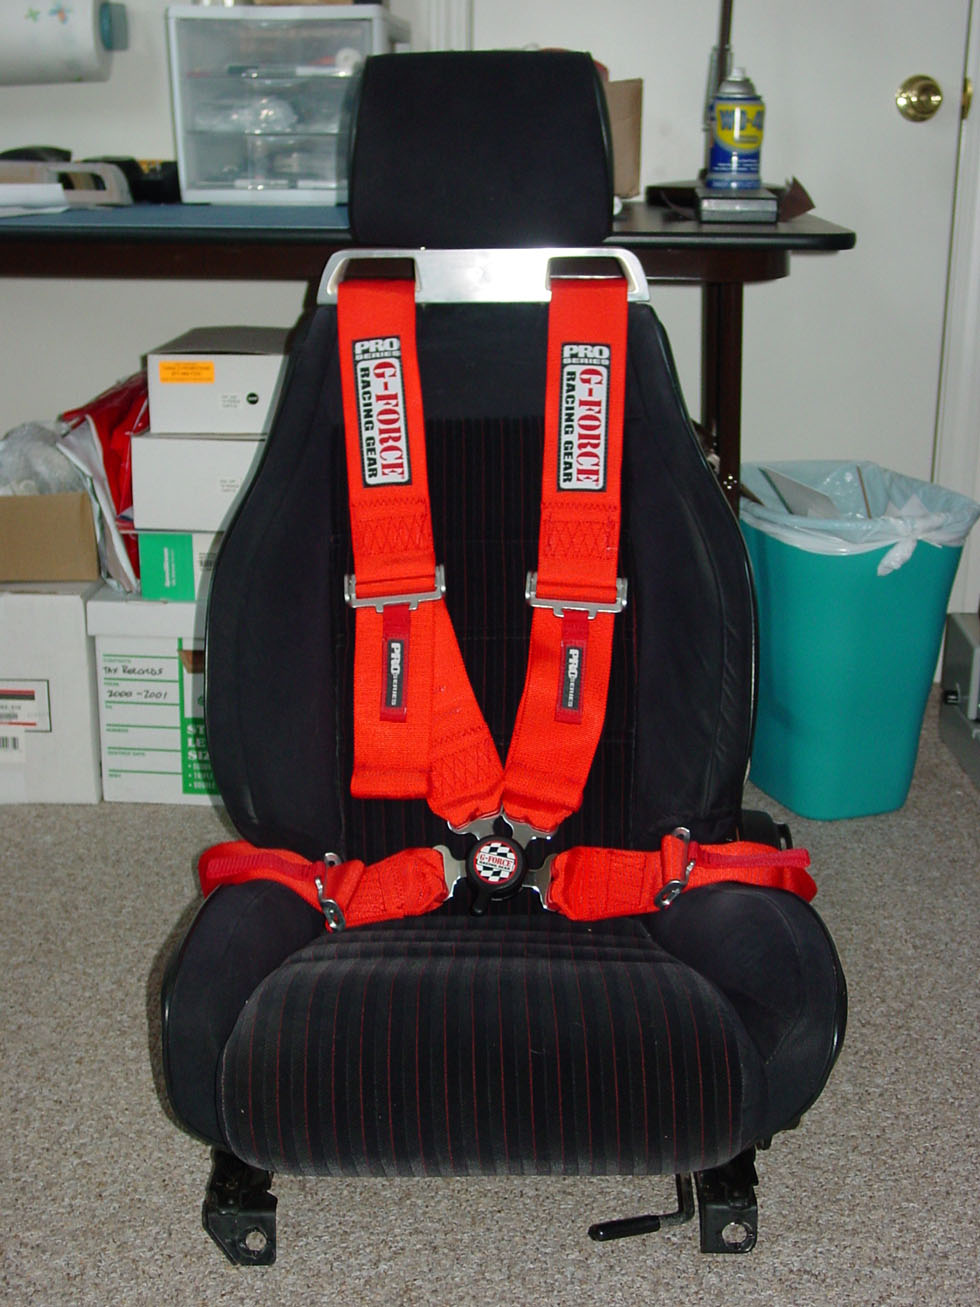 5 6 Point Racing Harness